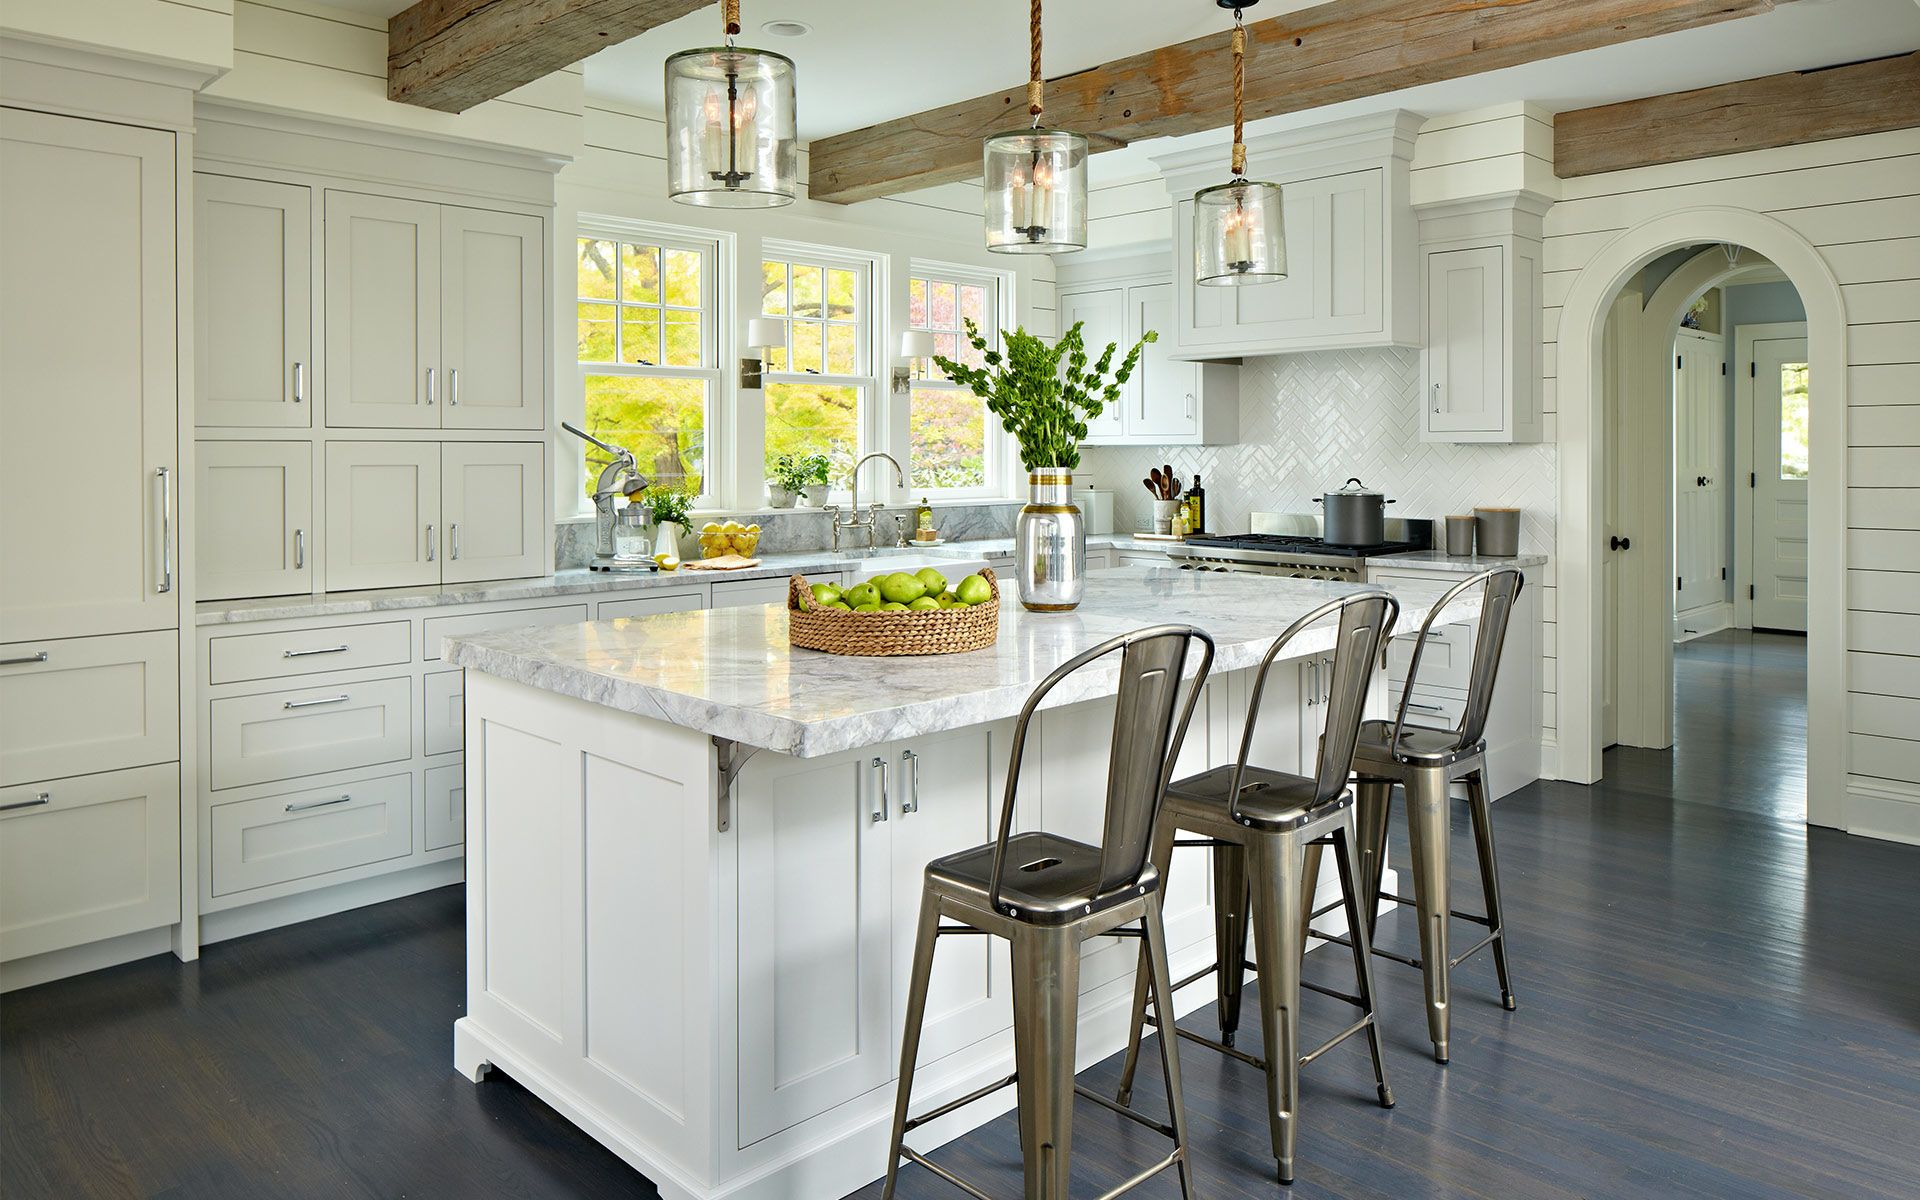 Contemporary Kitchen Designed By Deane Inc With Custom Cabinetry Custom Countertops Wooden Beams An White Kitchen Island Kitchen Design New Kitchen Cabinets